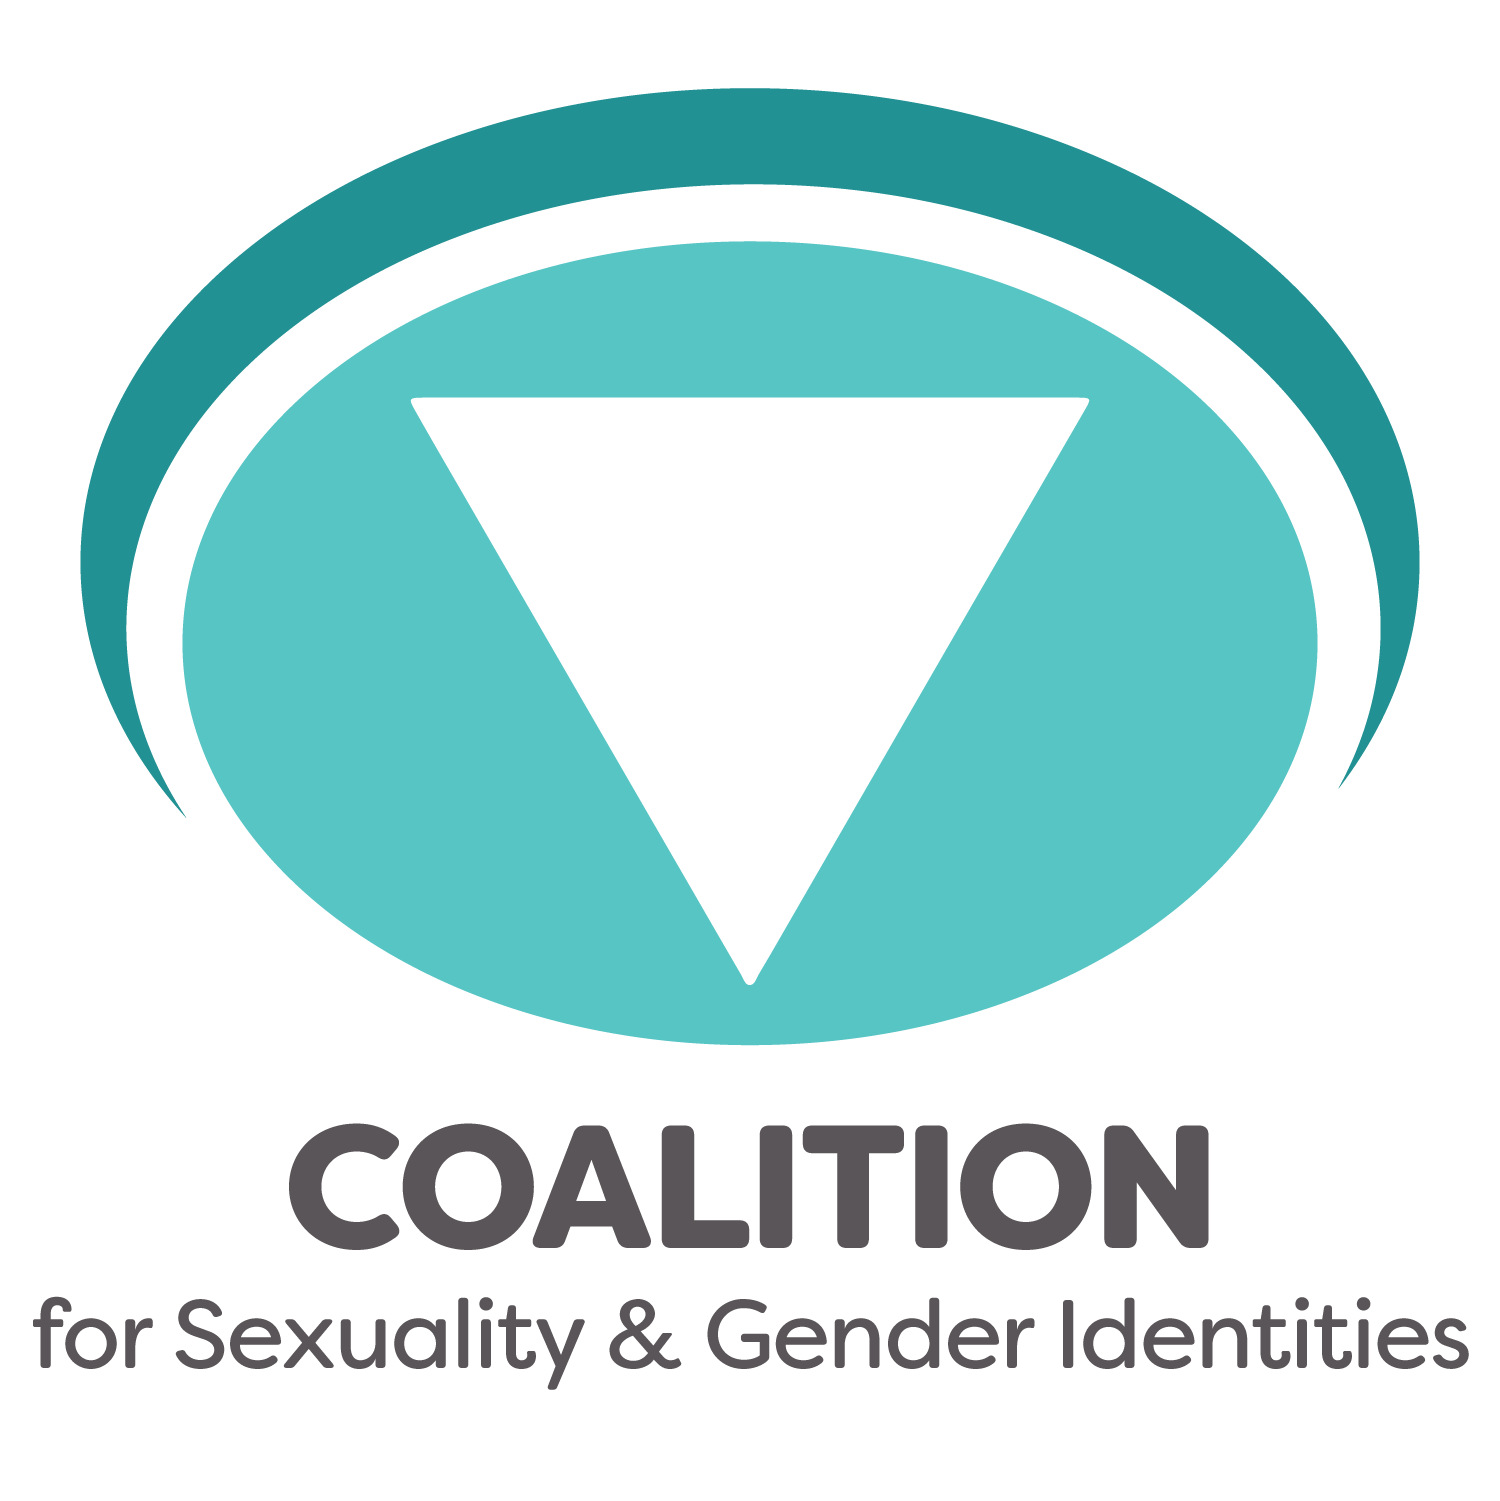 Coalition for Sexuality & Gender Identities logo